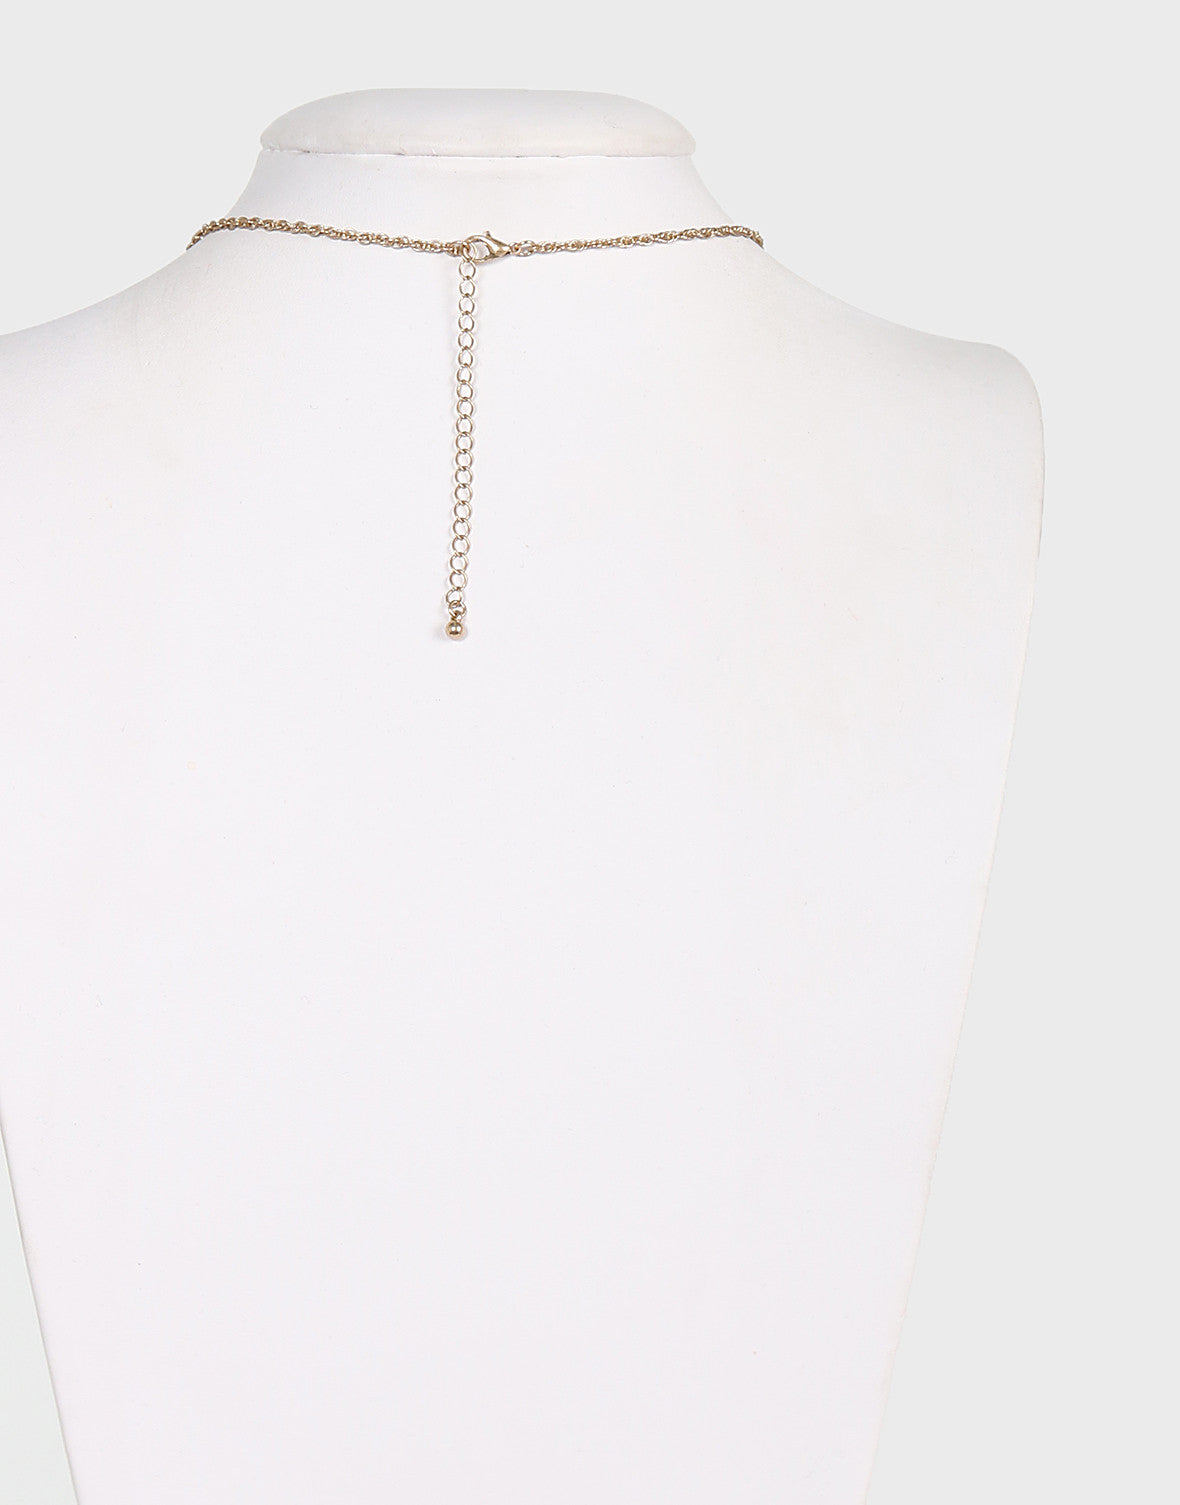 Clearly Triangle Pendant Necklace